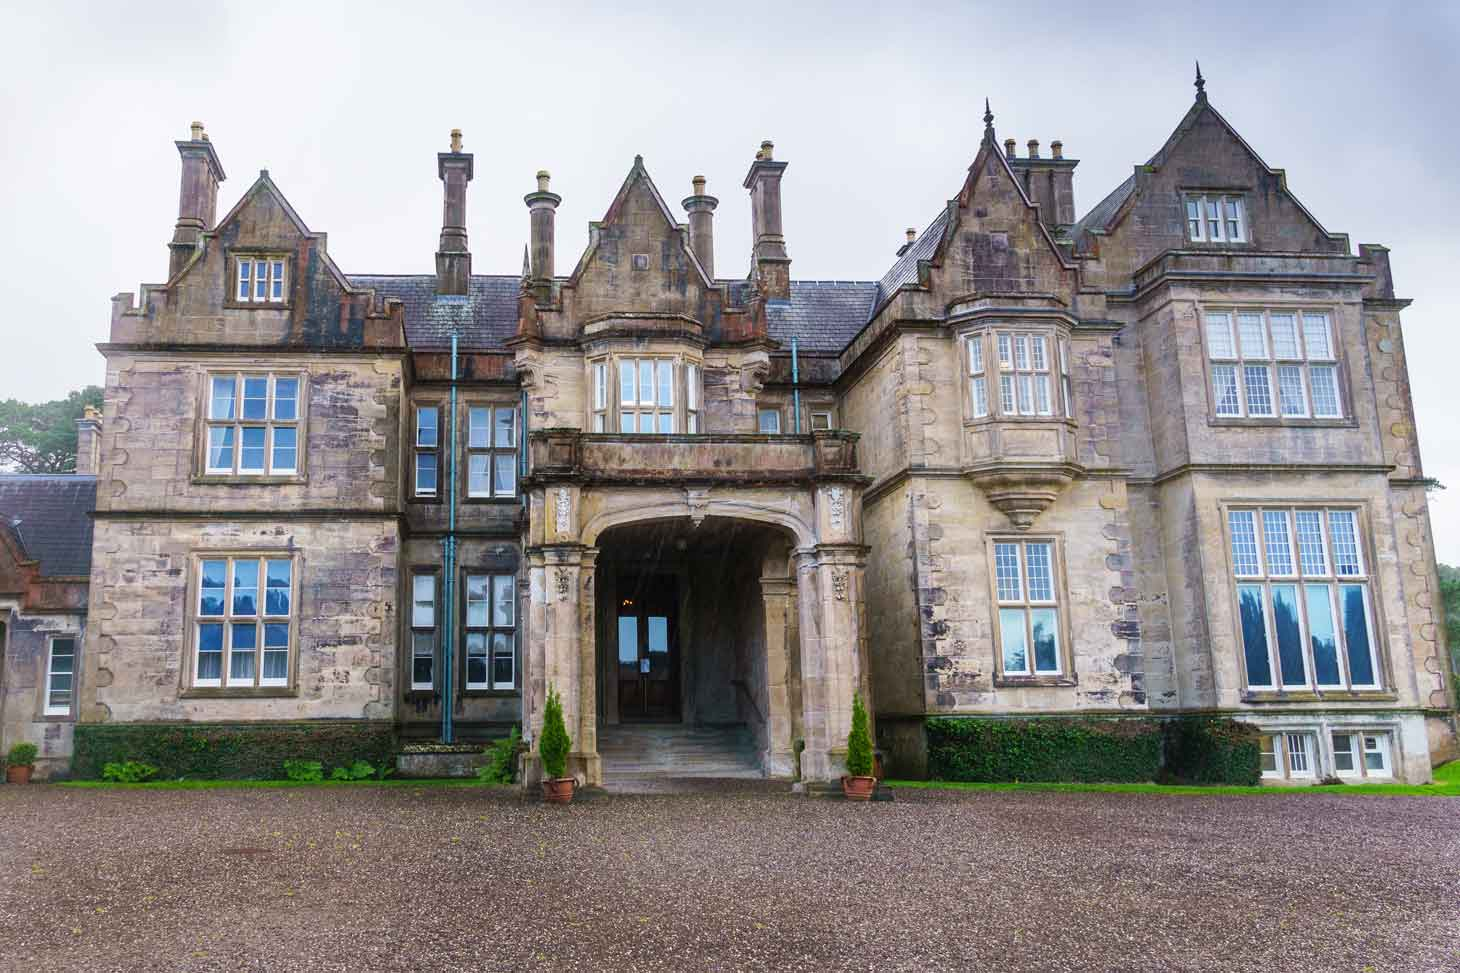 Muckross House in Killarney National Park during a rain storm.